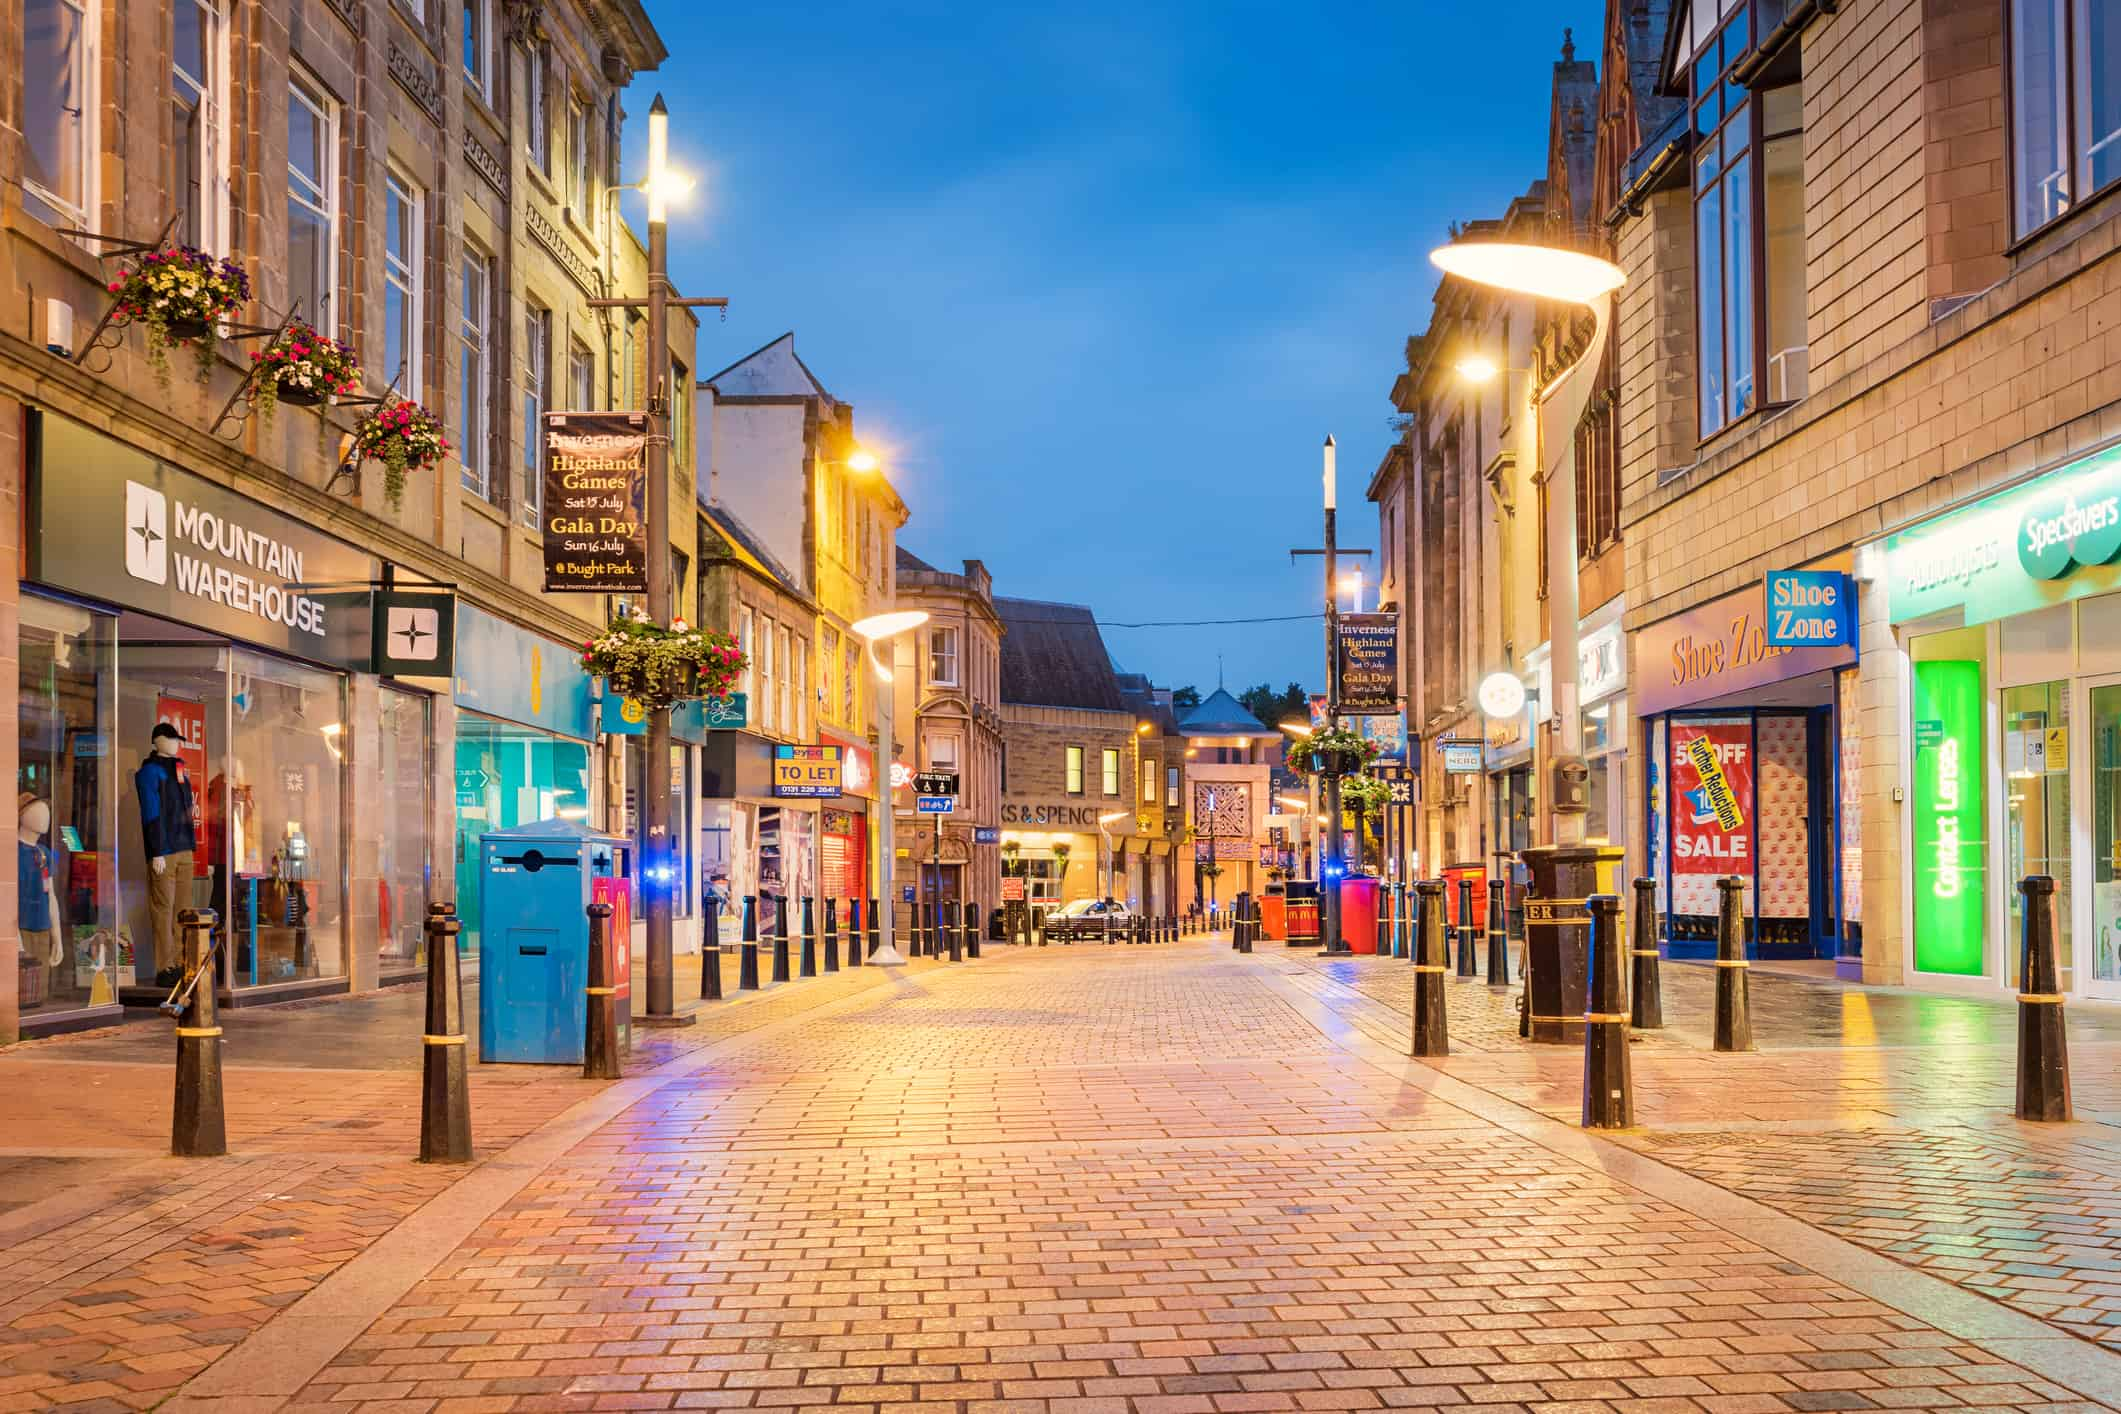 Image of UK highstreet